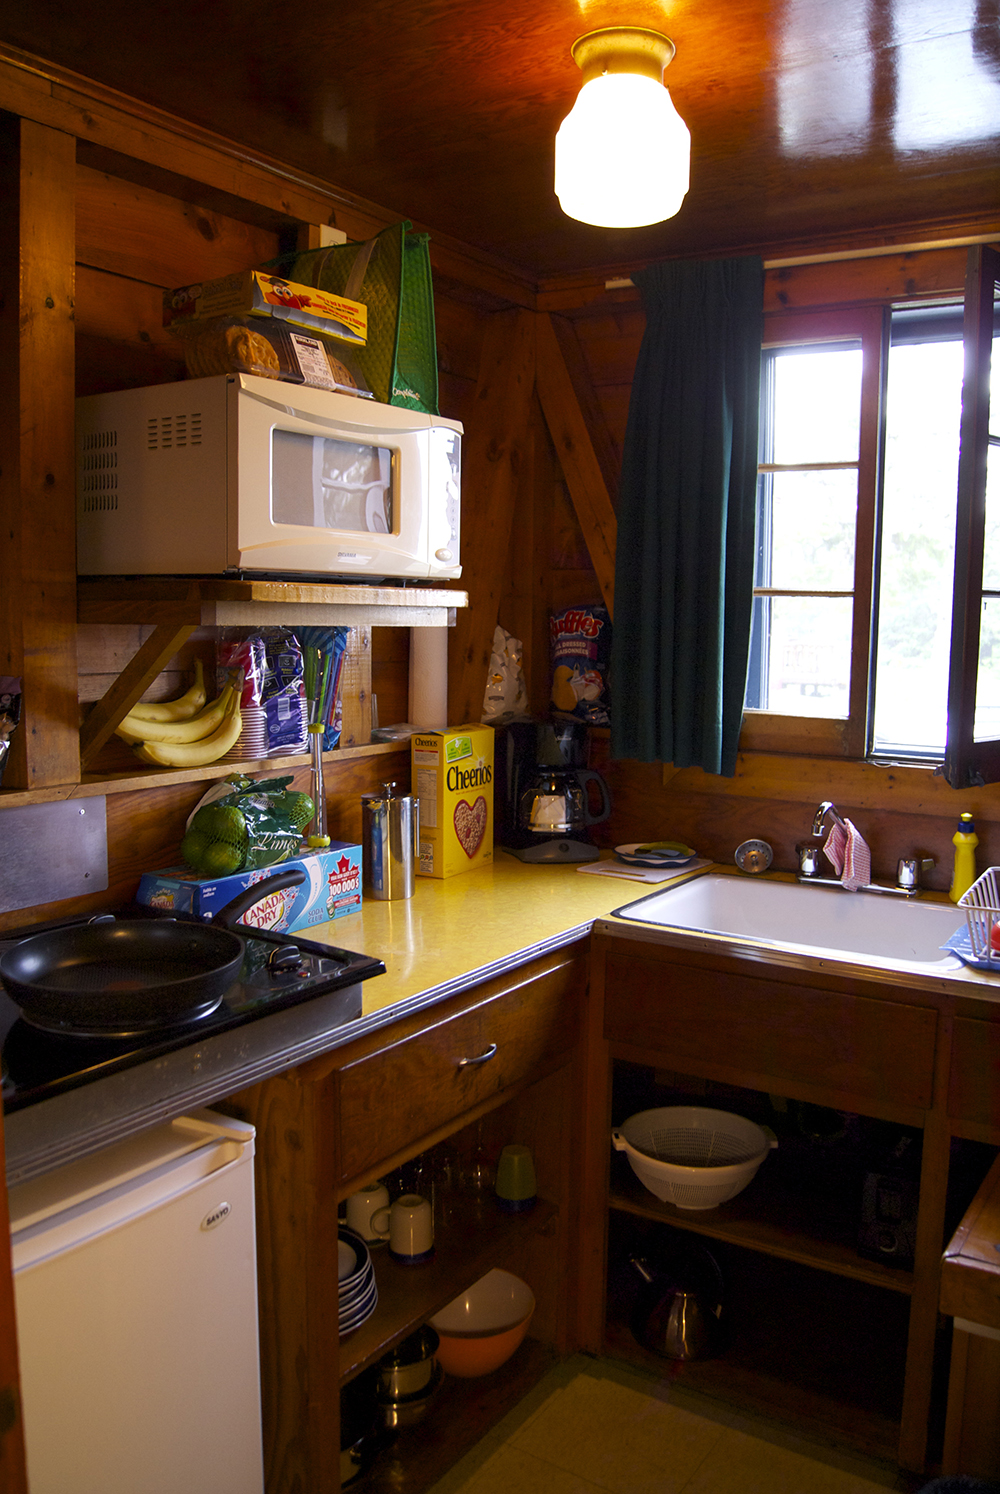 Our sweet little kitchenette at the cabin